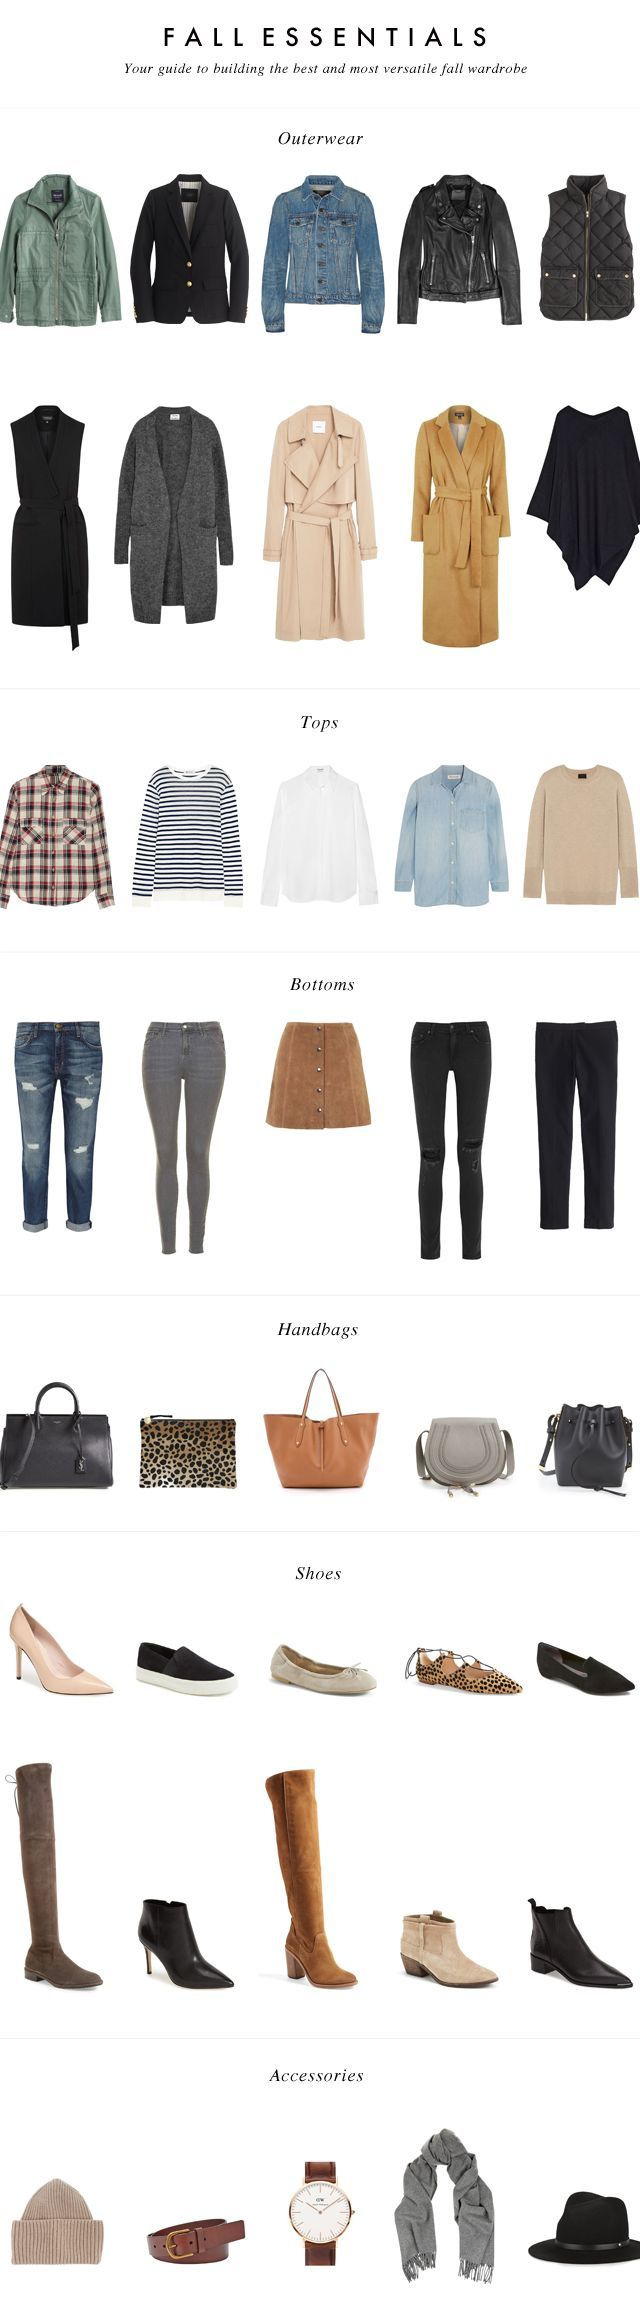 MINIMAL + CLASSIC: Fall Essentials: Your Guide to building the best and most…